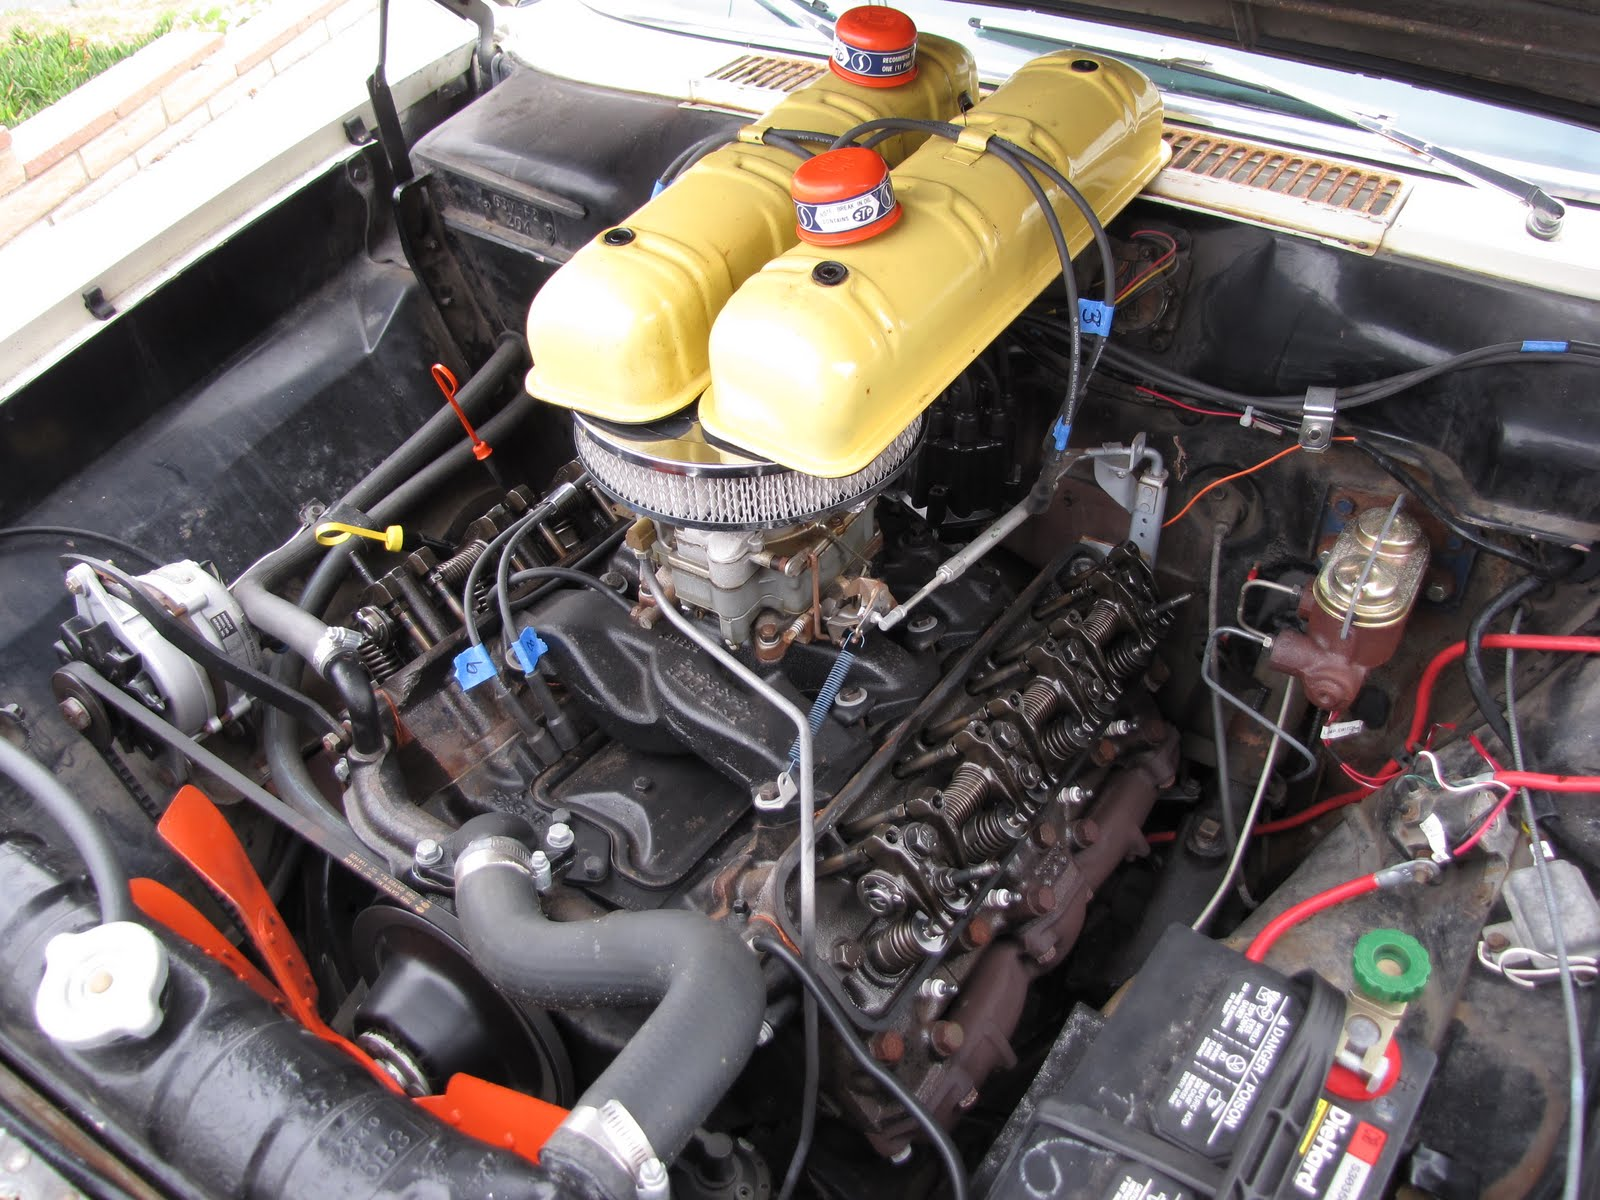 The Studeblogger Valve Adjustment For Studebaker V8 1960 Lark Wiring Diagram After Covers Were Off I Removed Spark Plugs Like Doing This With As It Provides More Room To Work